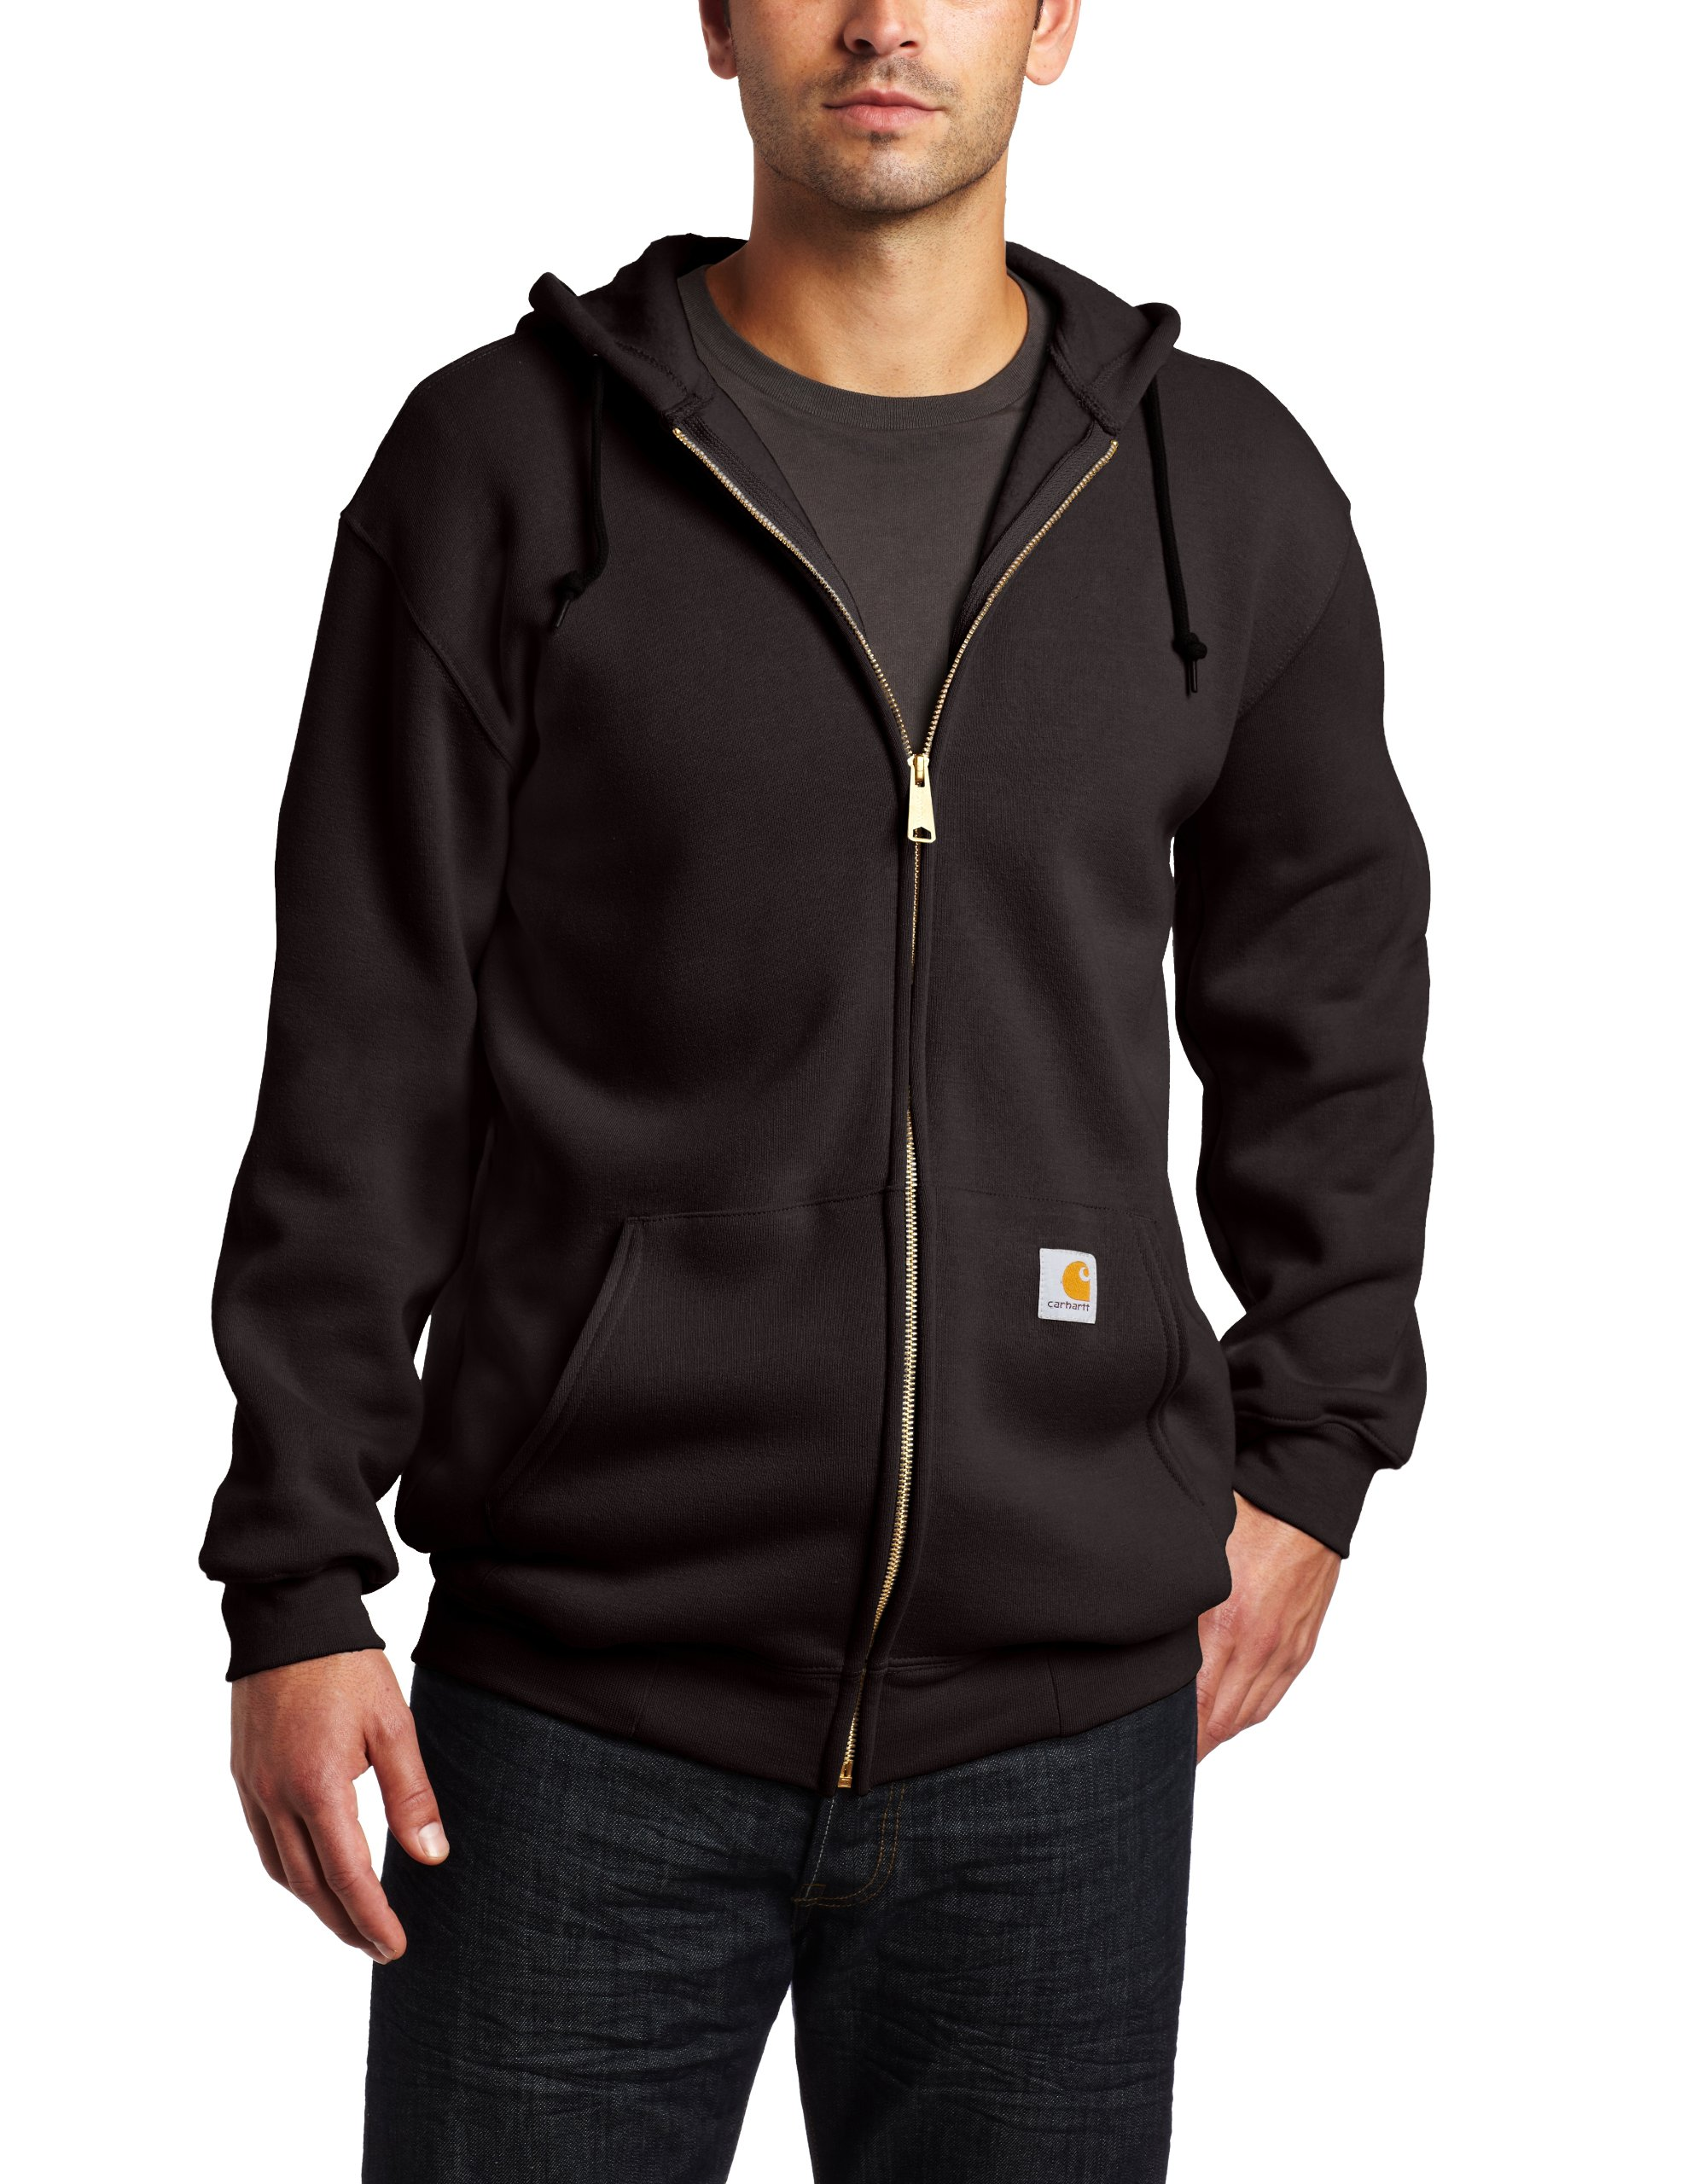 Carhartt Men's Midweight Sweatshirt Hooded Zip Front Original Fit K122,Black,XX-Large by Carhartt